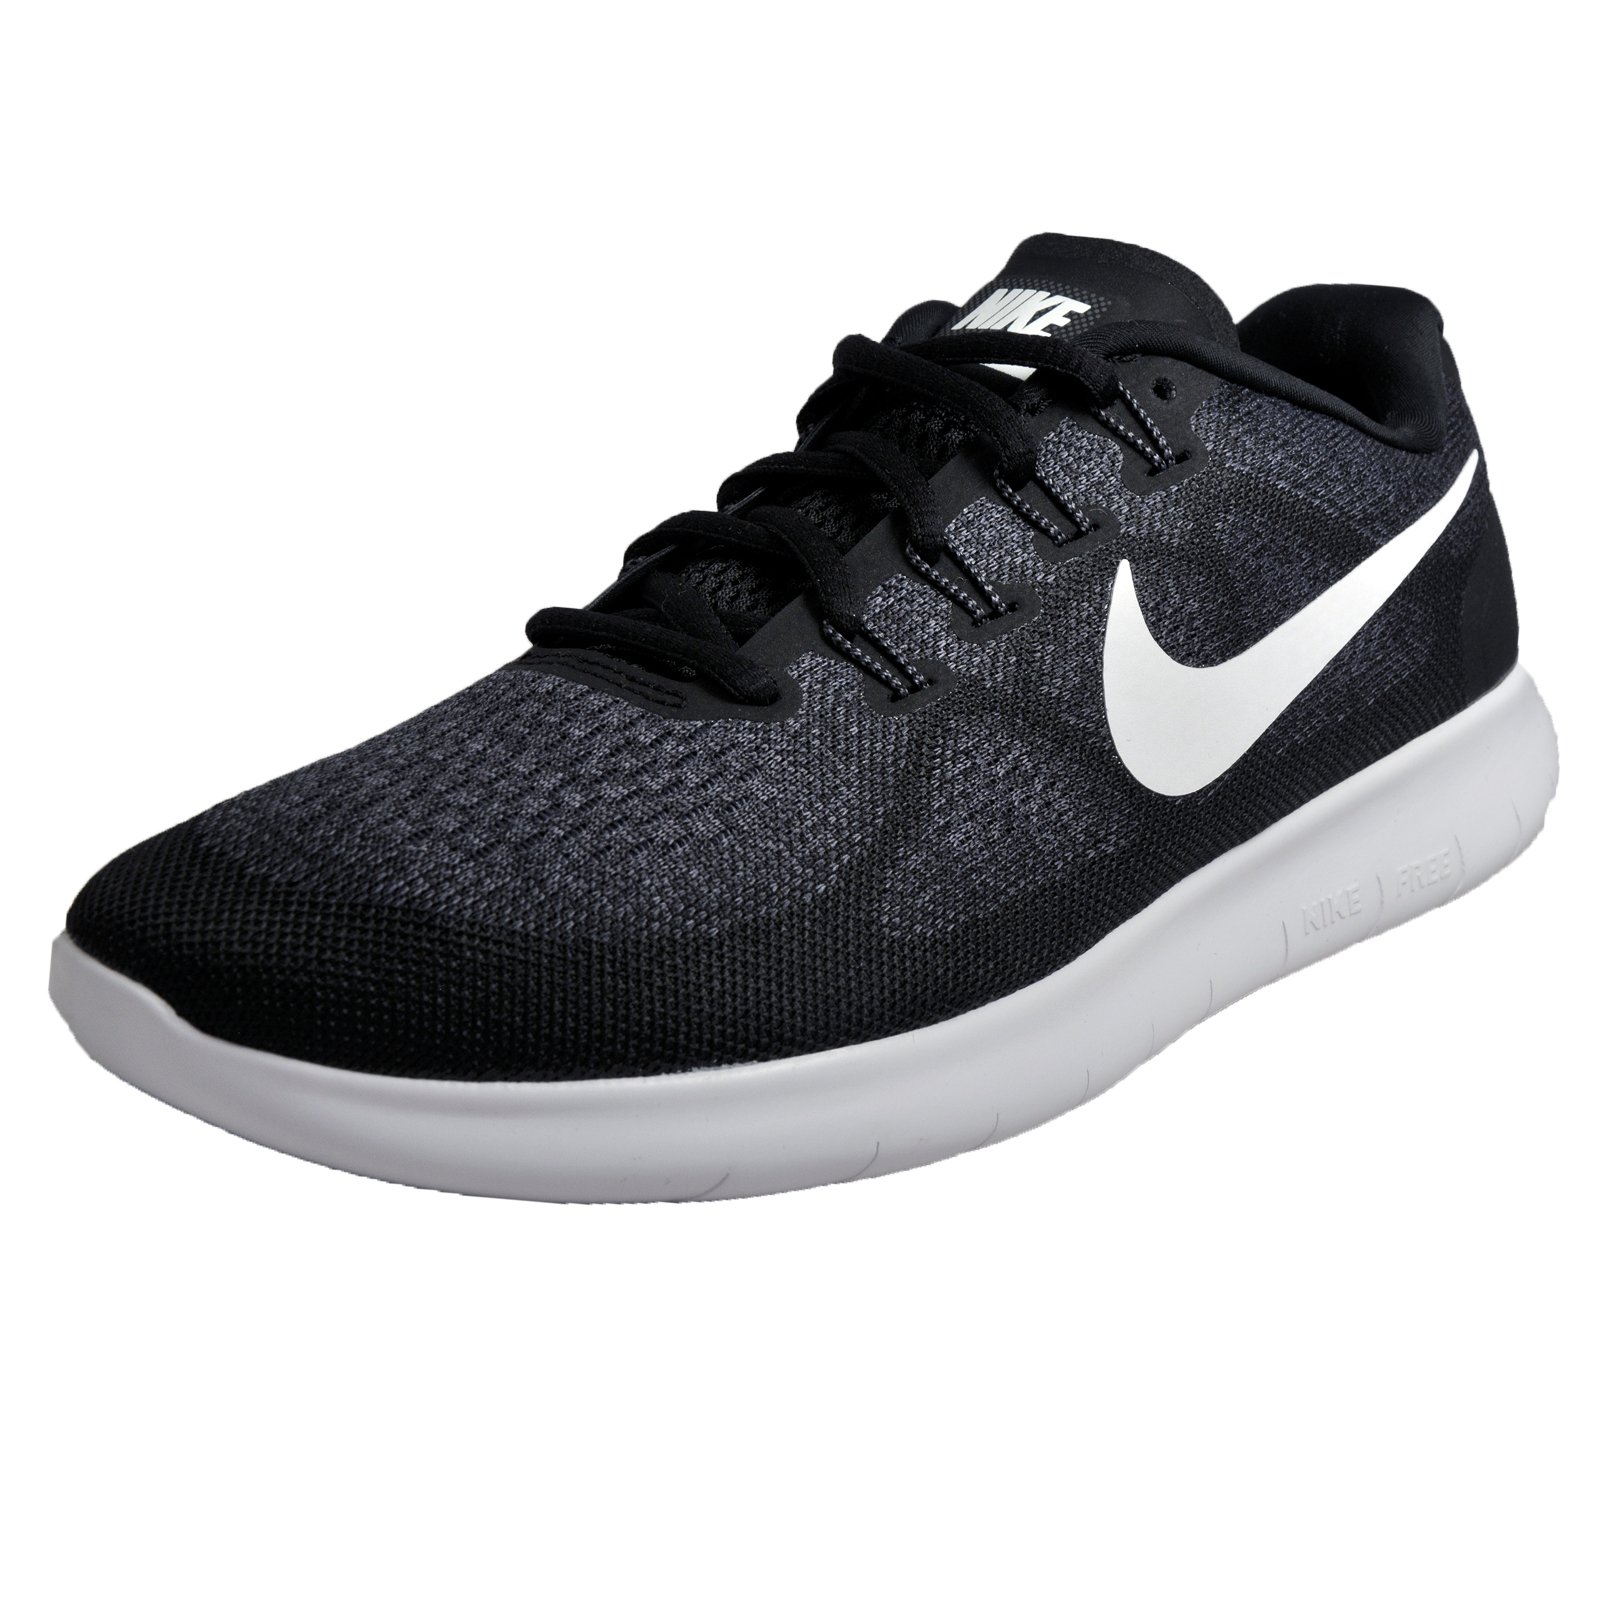 Nike Free RN 2017 Mens Running Shoes Fitness Gym Workout Trainers Black 039dcd9ab73e4